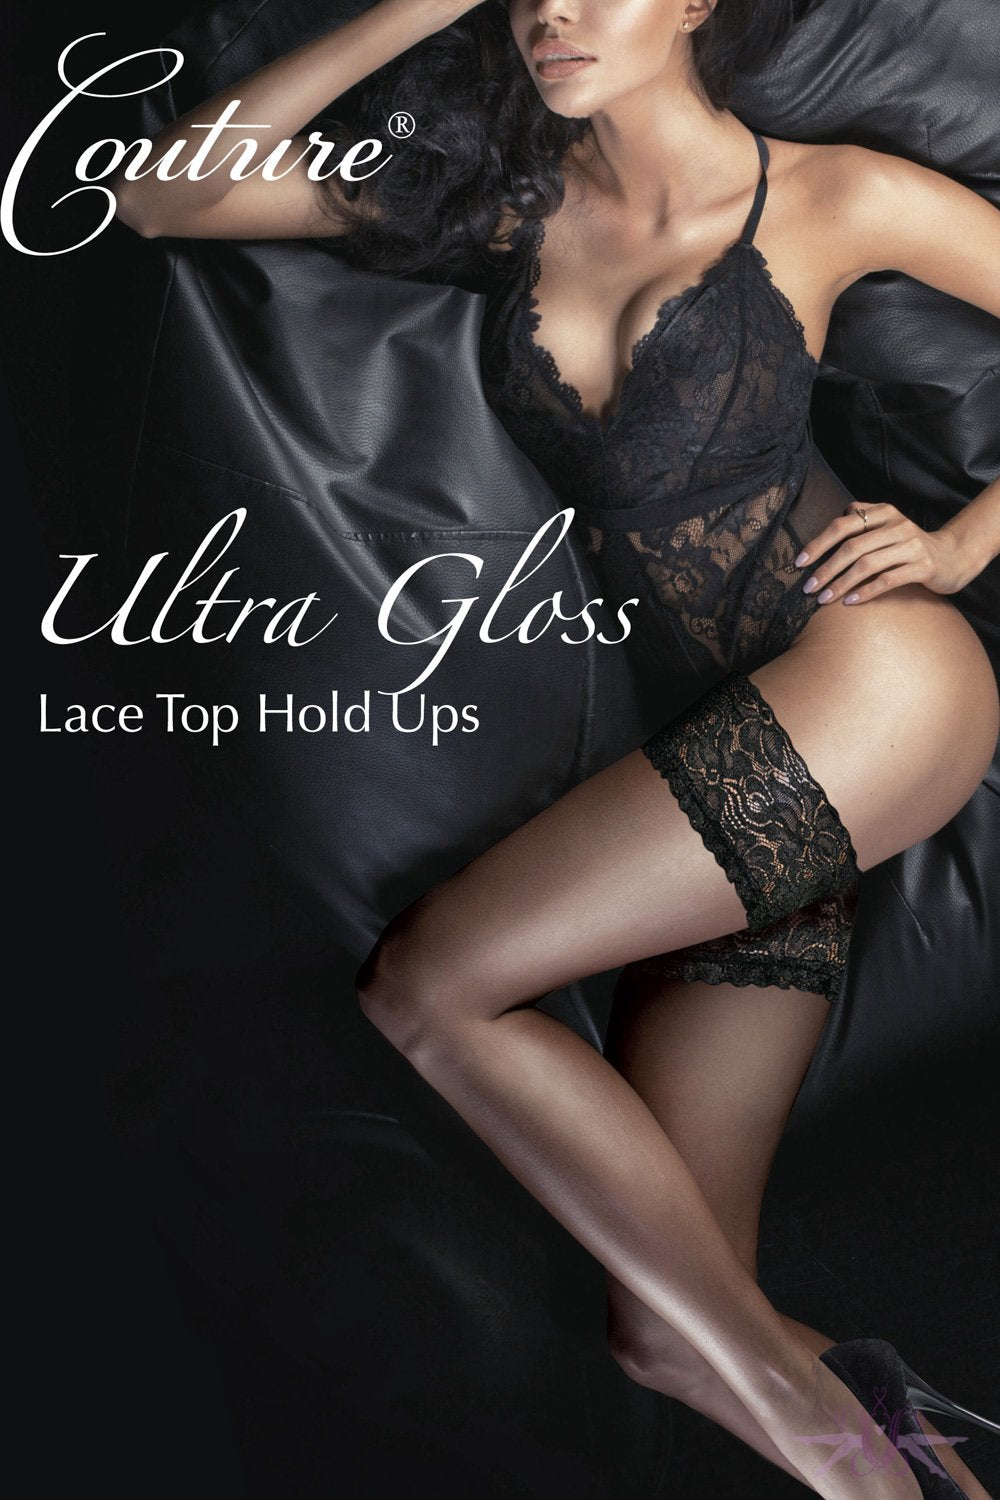 Couture Ultra Gloss Lace Hold Ups